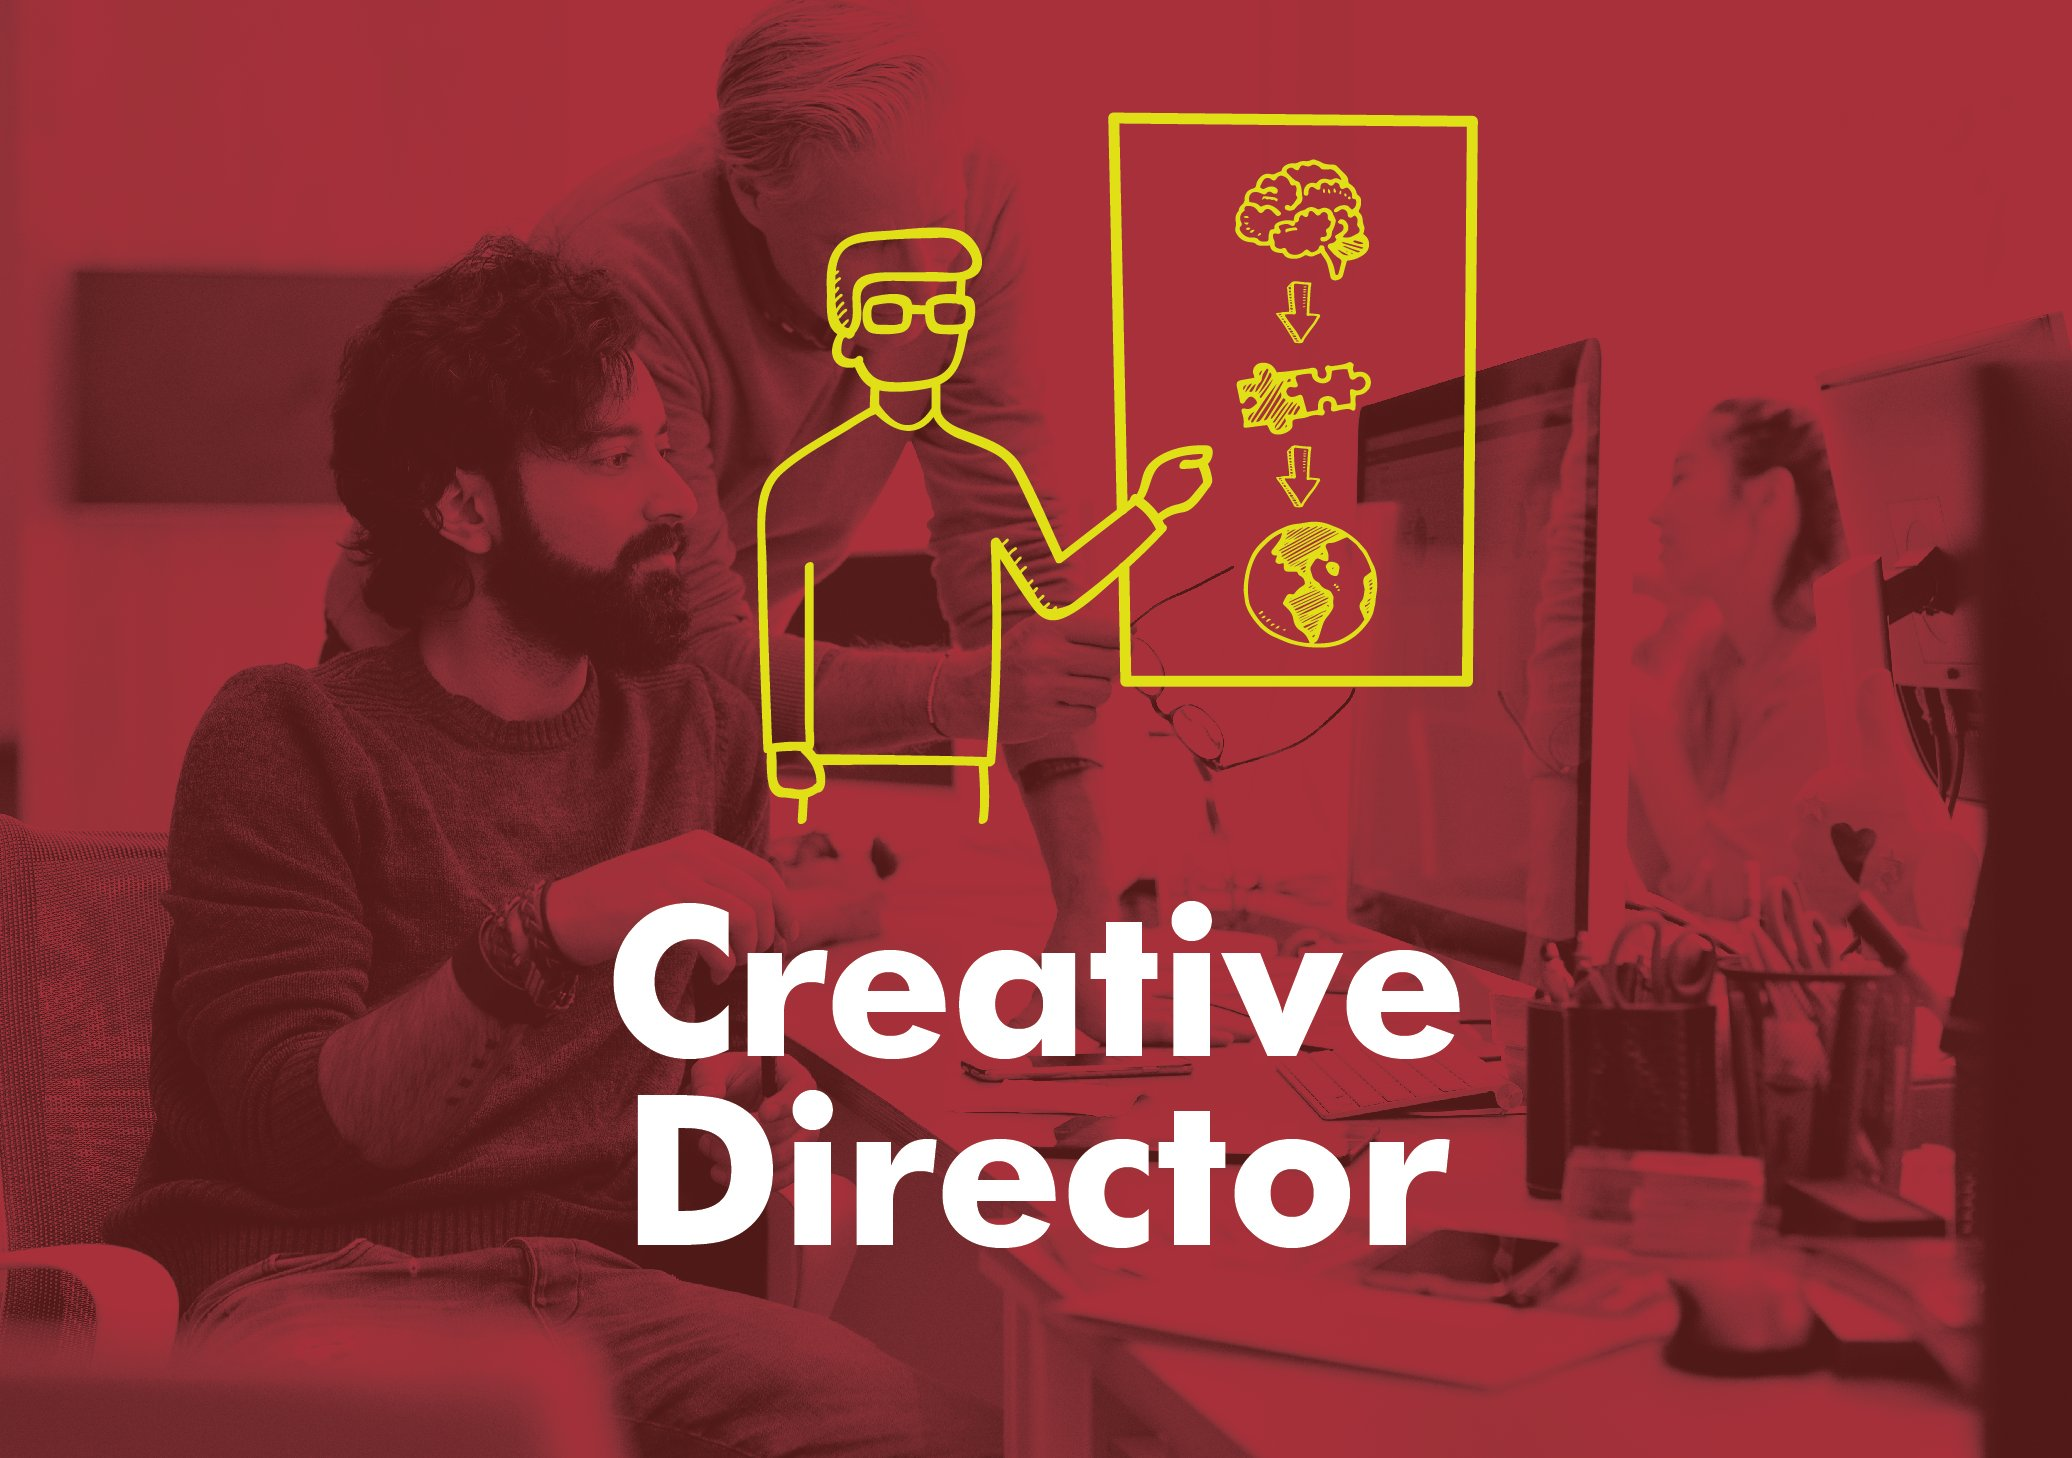 Creative Director Job Description And Salary Robert Half